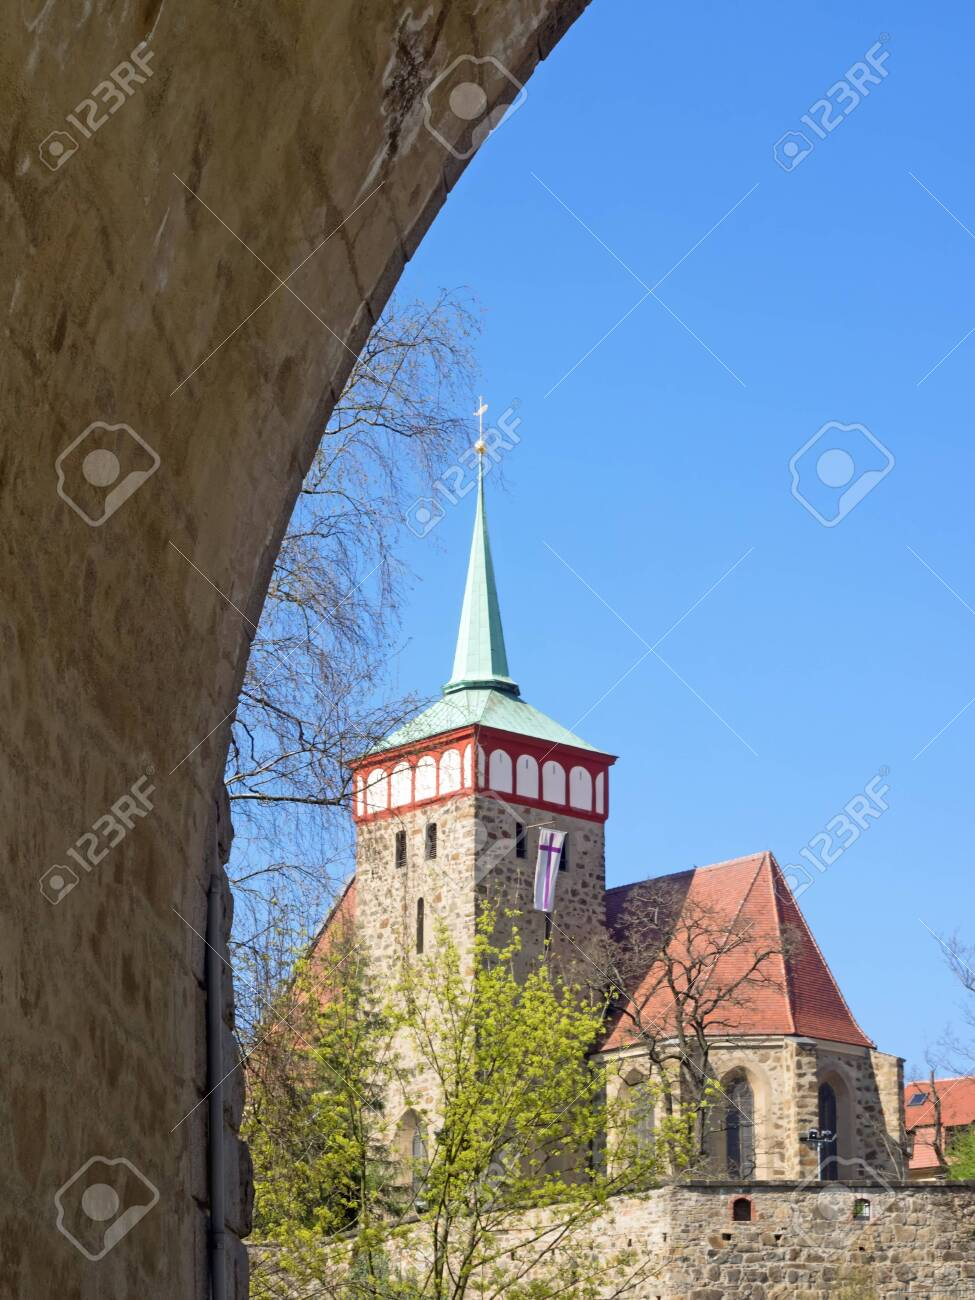 Old town of city Bautzen with church of St. Michael, Saxony, Germany, seen through a bridge arch - 149218983